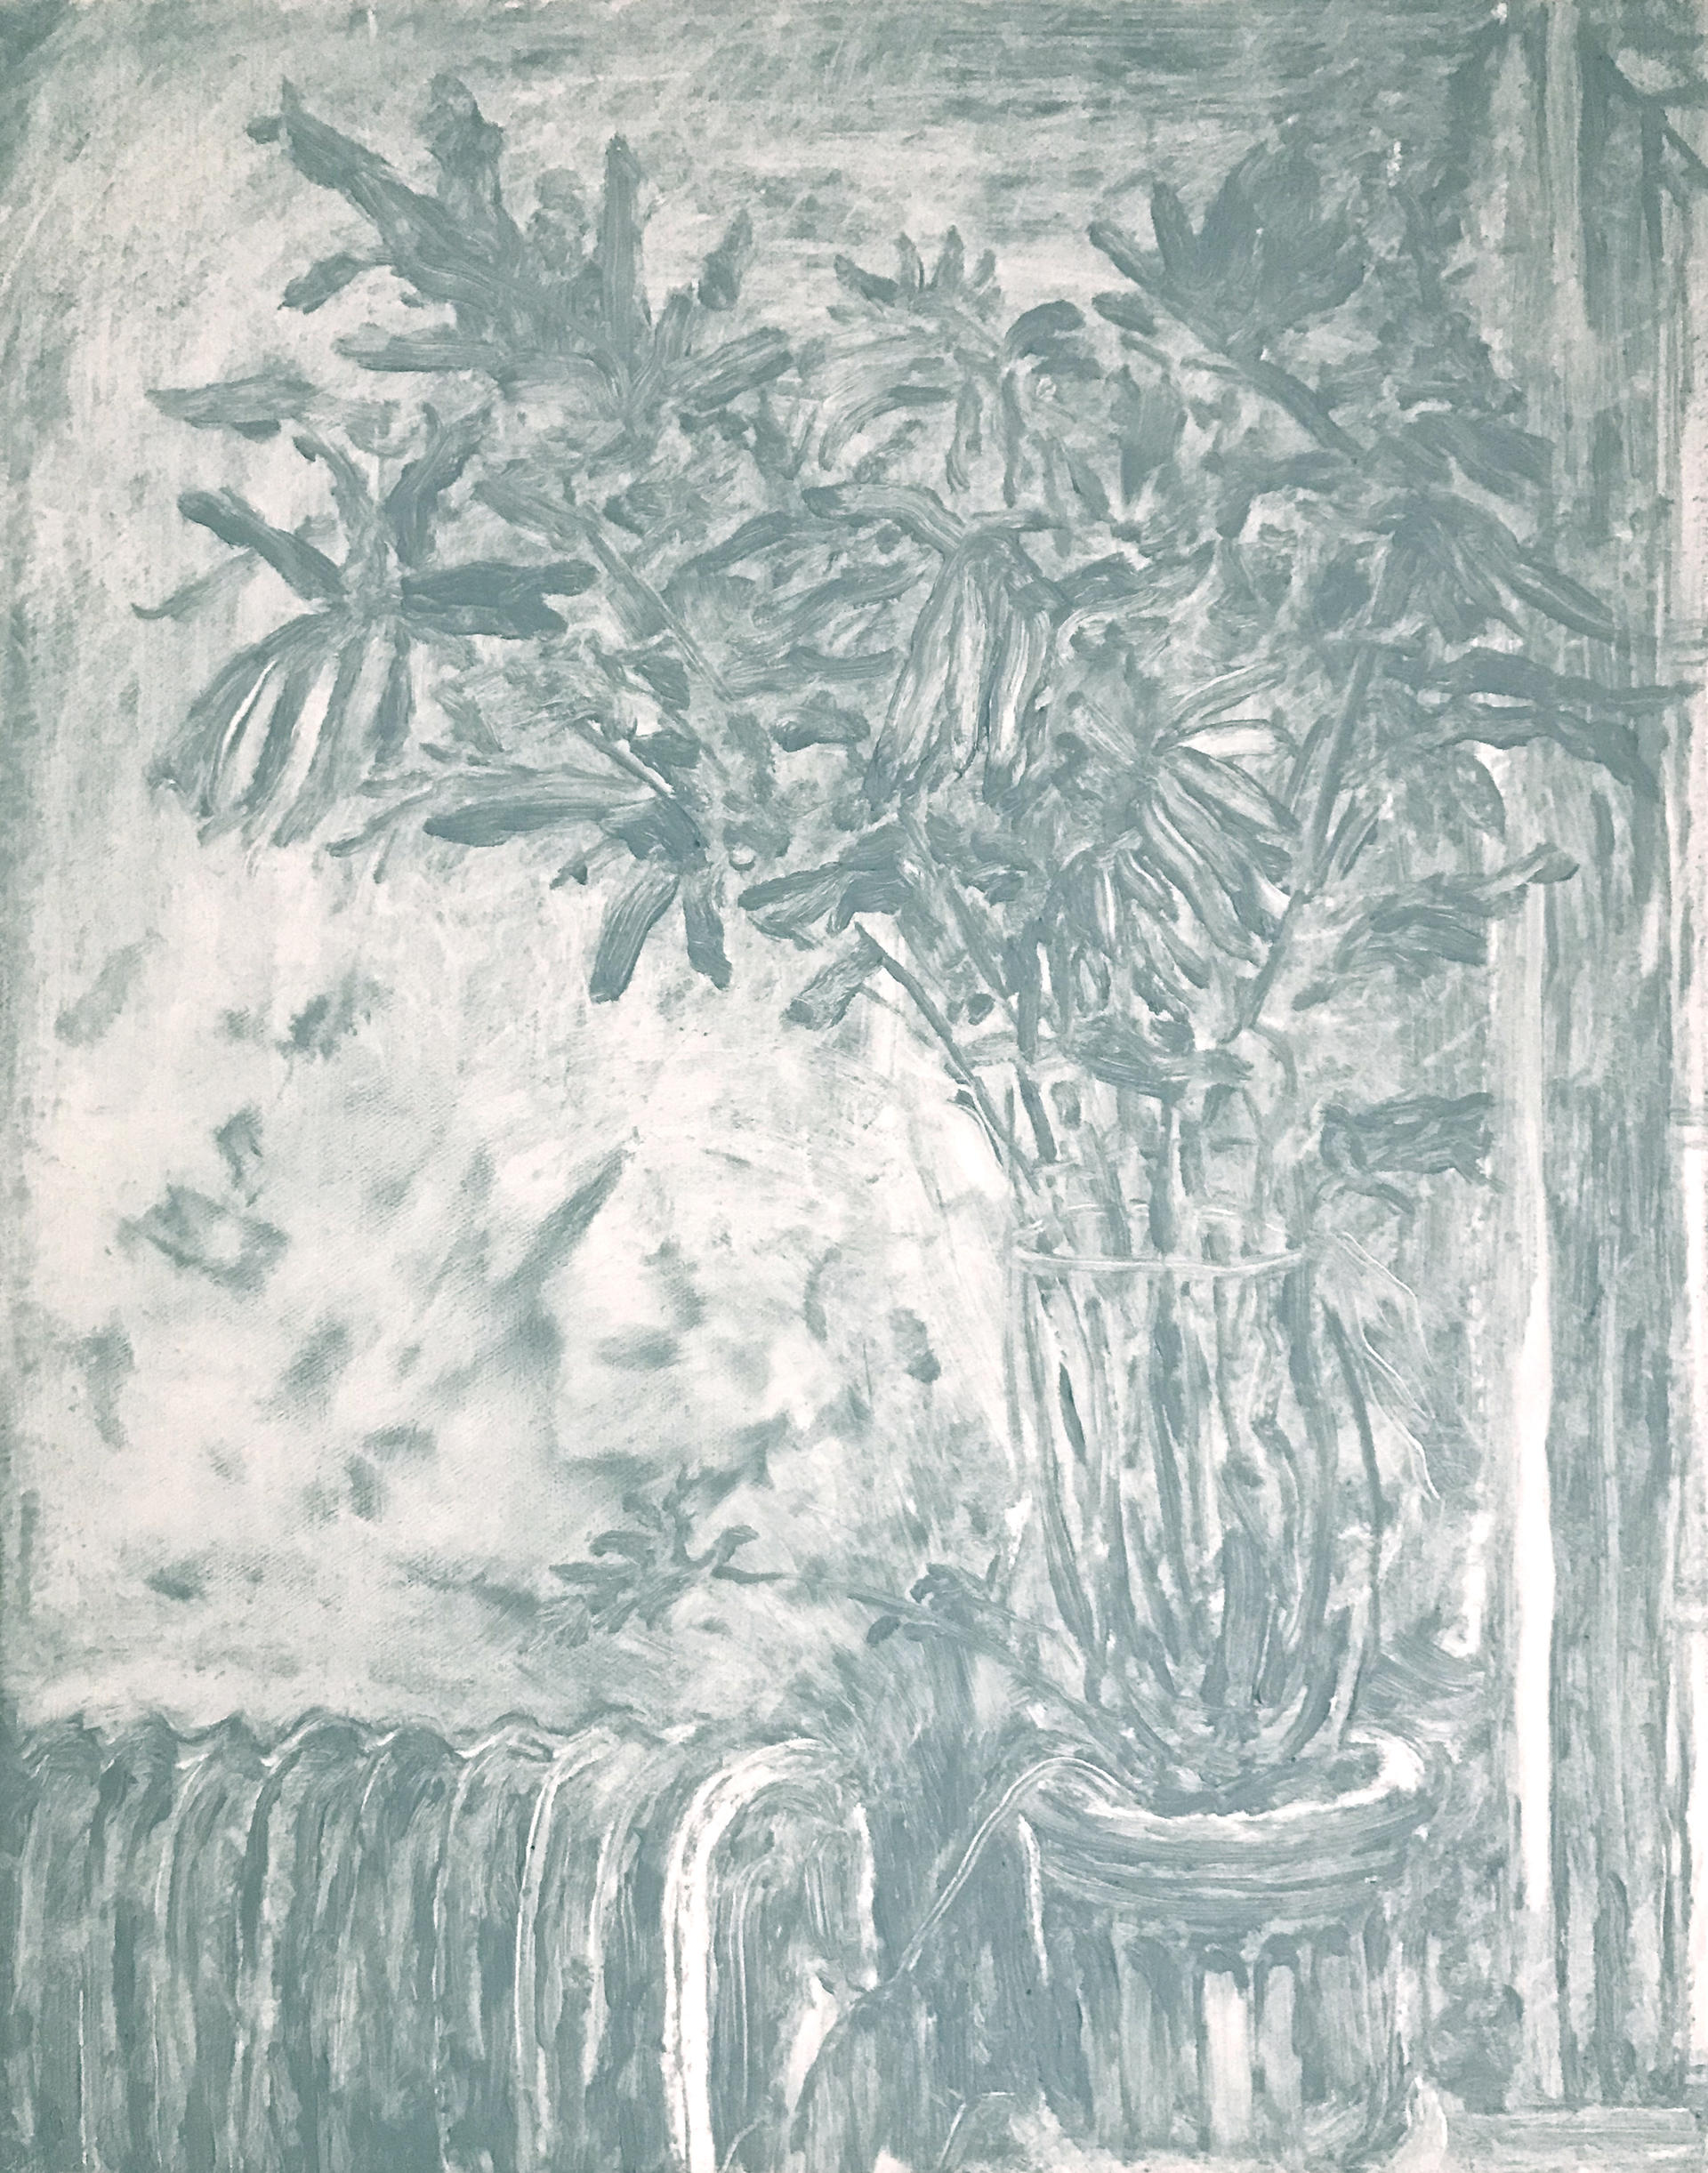 a monochromatic painting of a philodendron plant